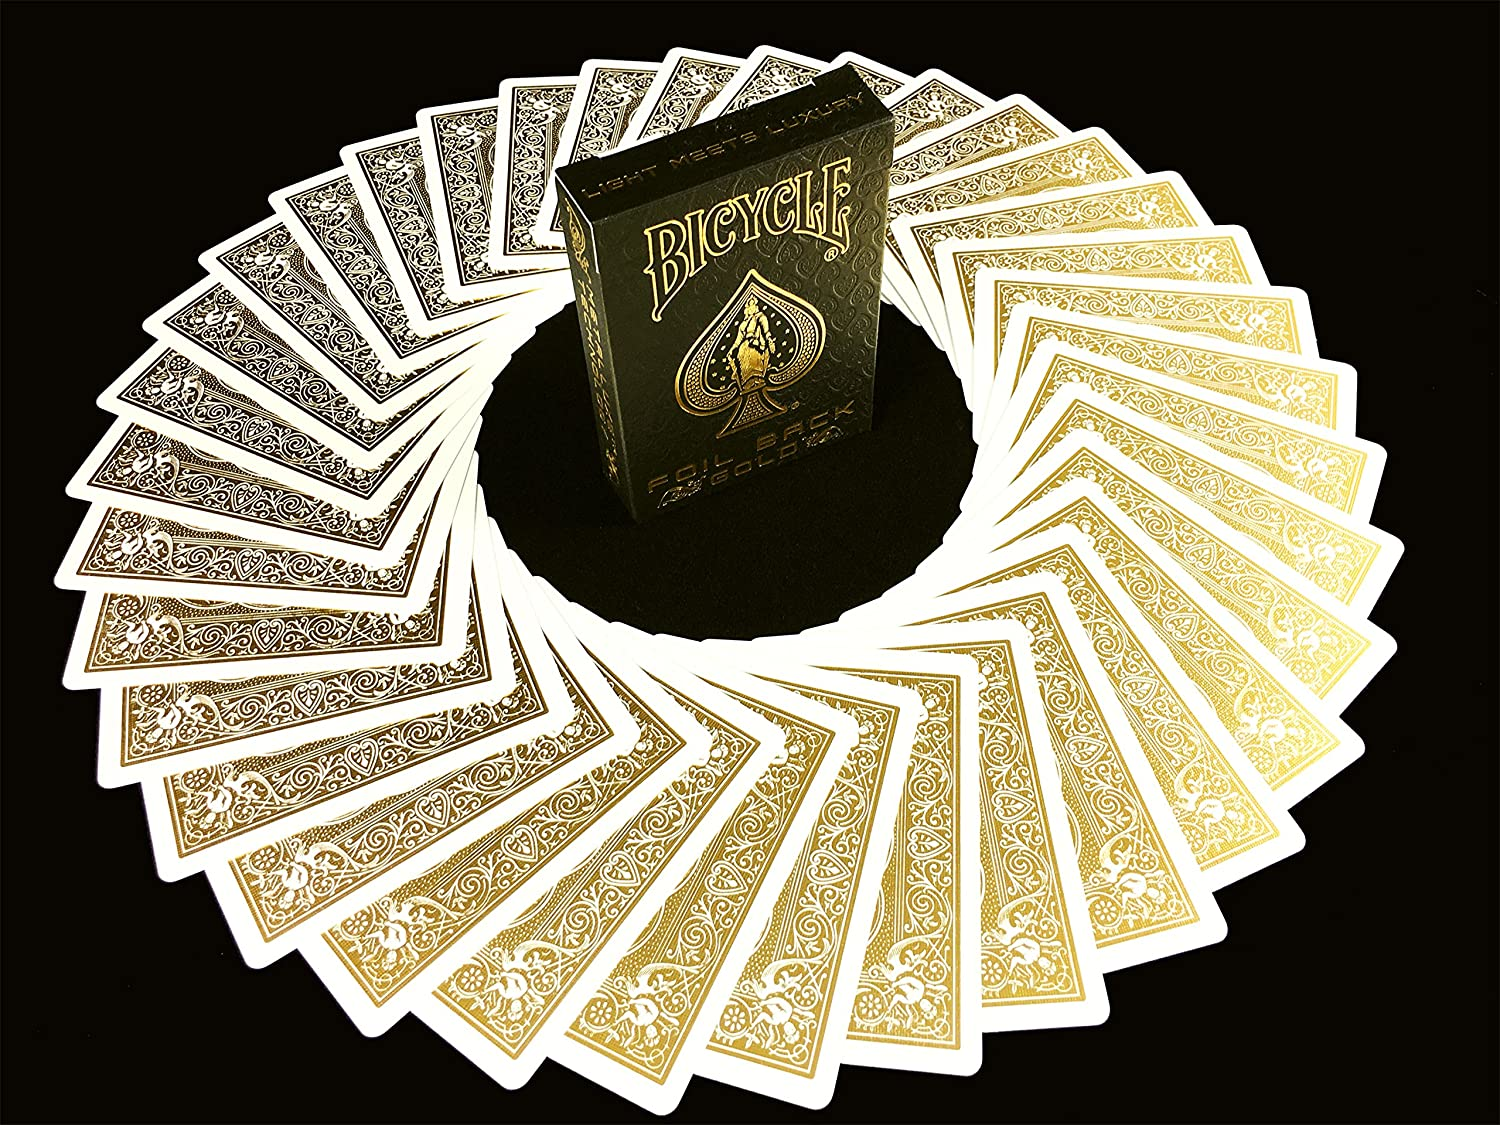 BICYCLE METALLUXE GOLD JUEGO DE CARTAS Baraja Limited Edition Cards By JOKARTE COLLECTORS Playing cards Golden Luxe